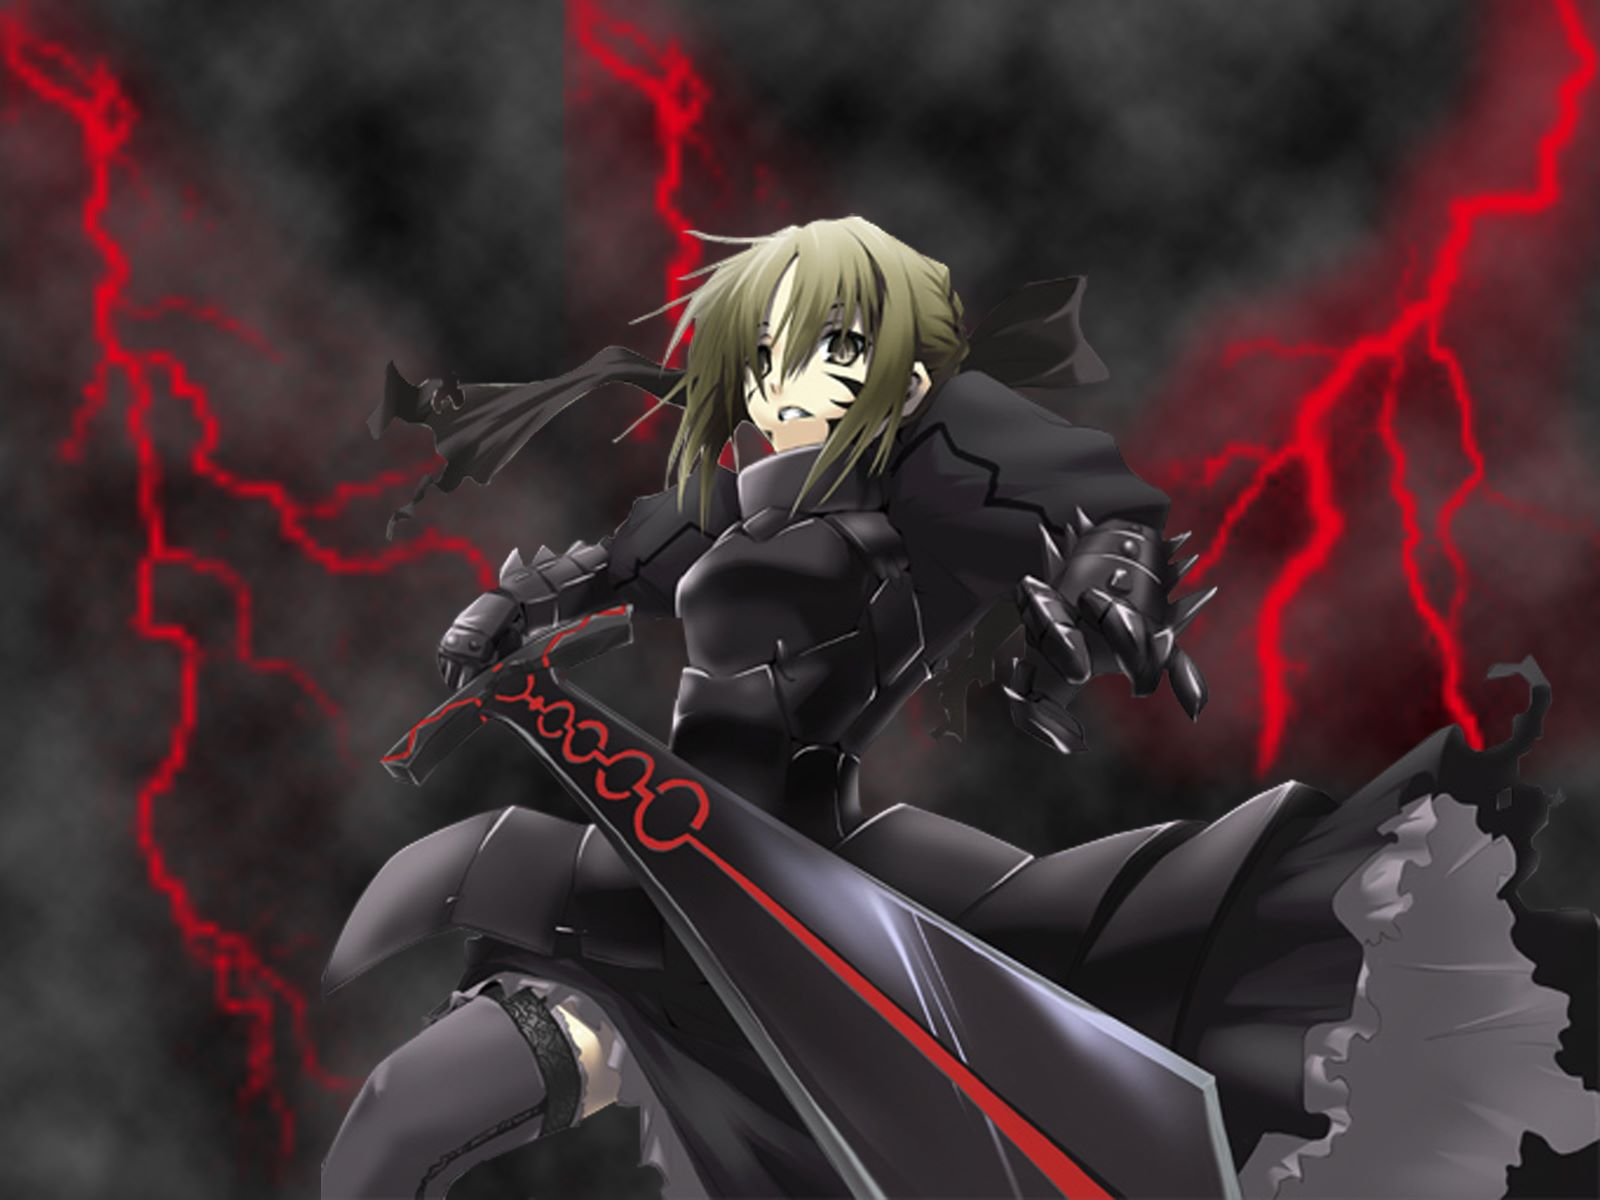 Anime - Fate/Stay Night  - Saber Alter Wallpaper